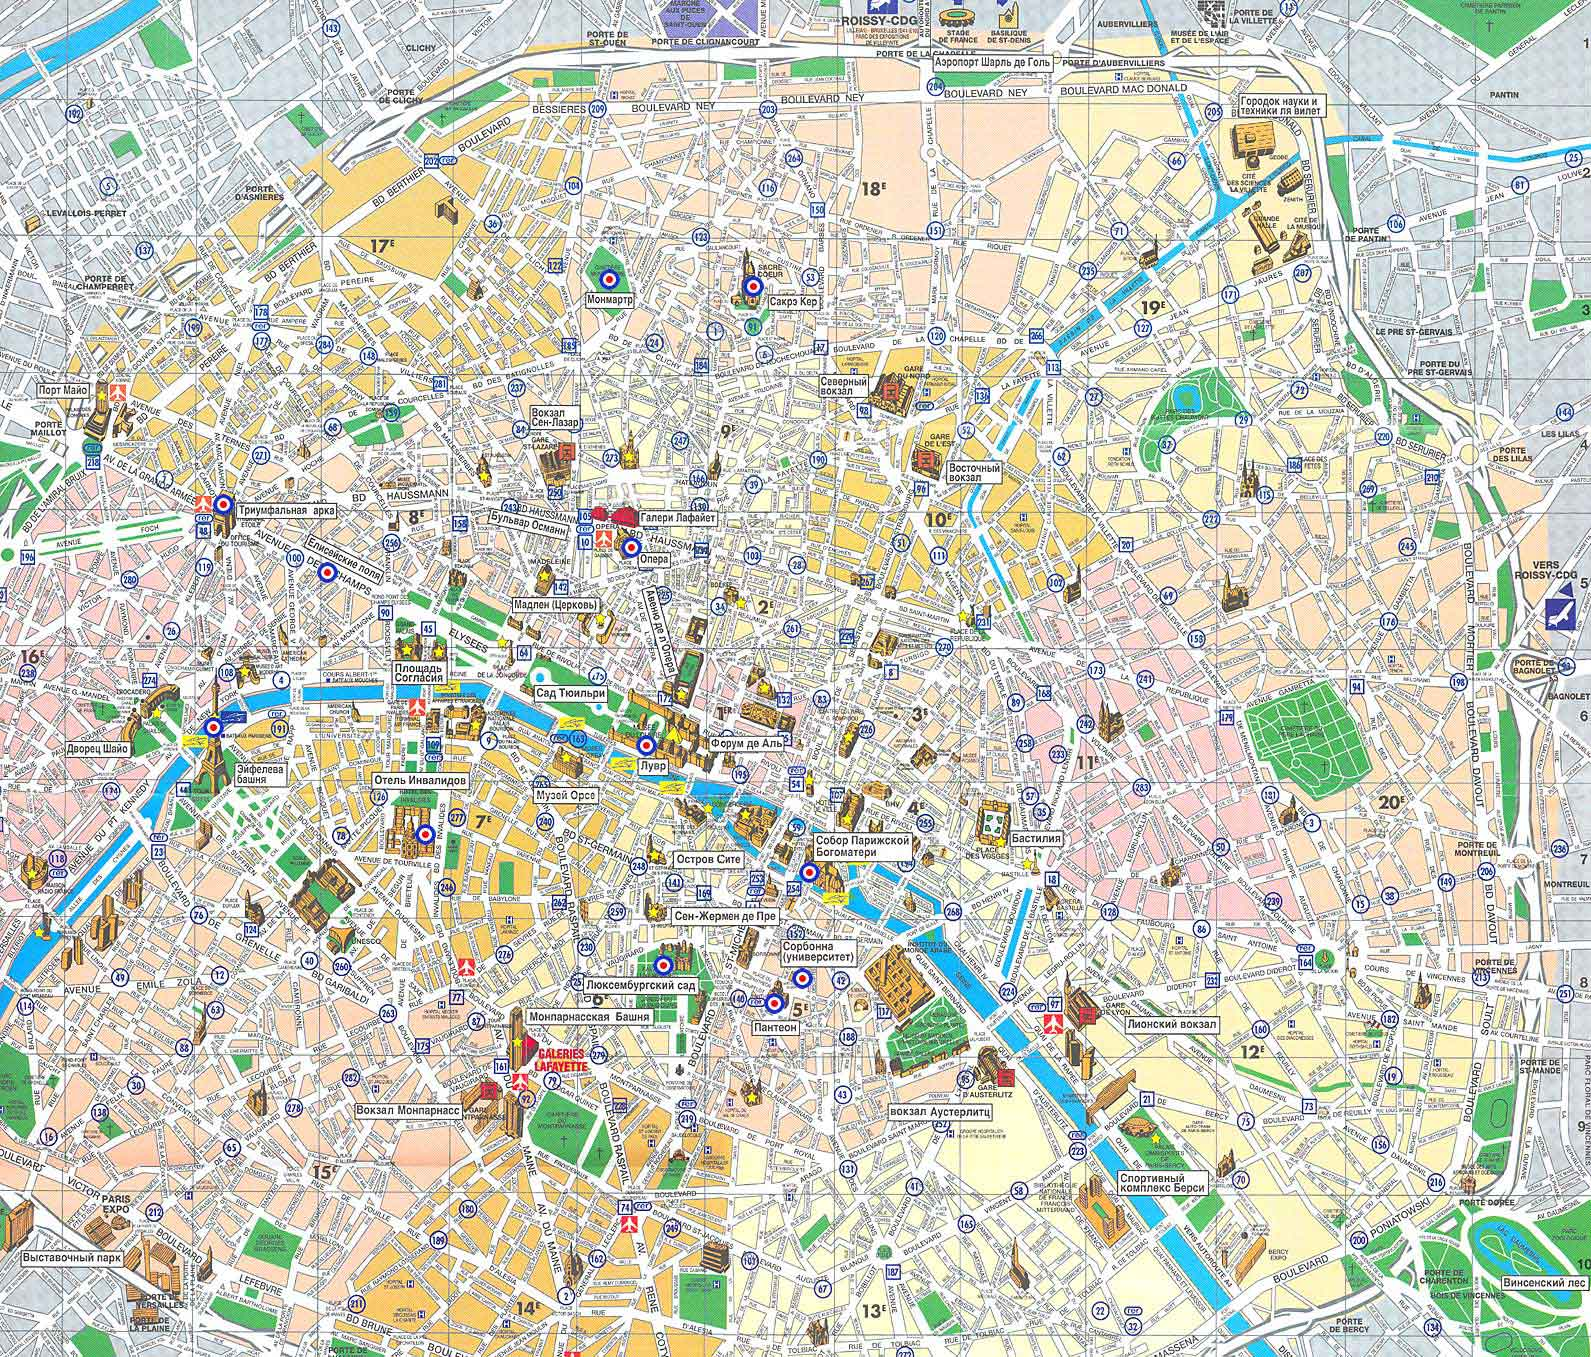 Paris Map Detailed City and Metro Maps of Paris for Download – Paris Tourist Attractions Map